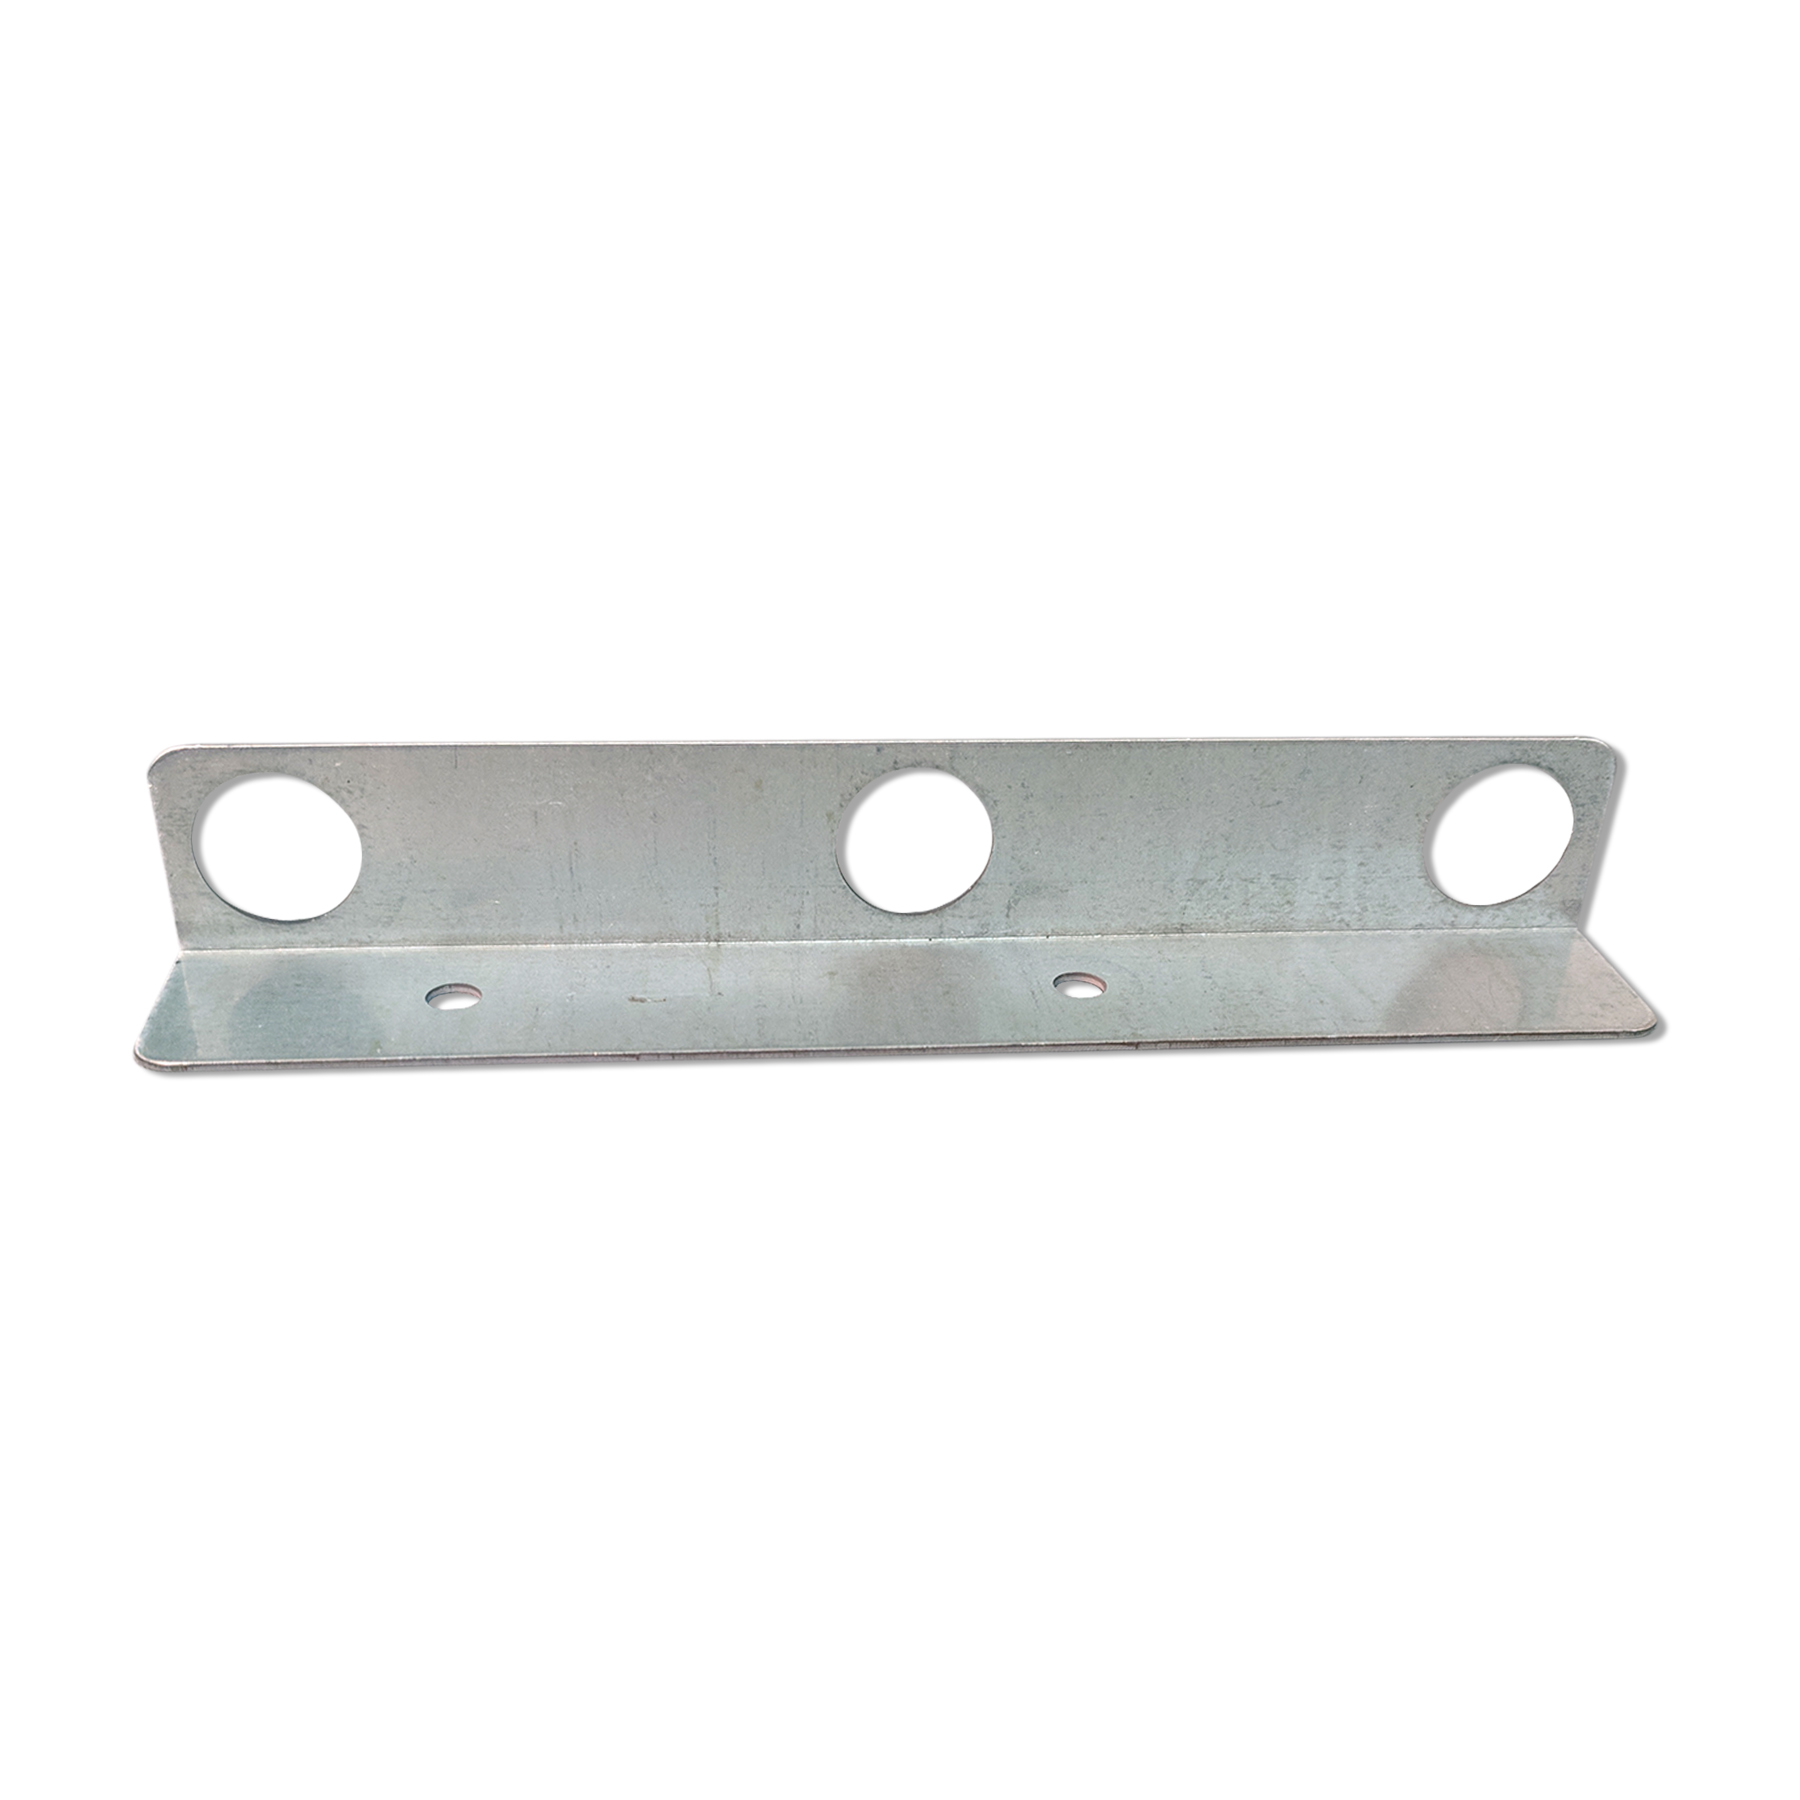 90 Degree Angle Steel Mounting Bracket